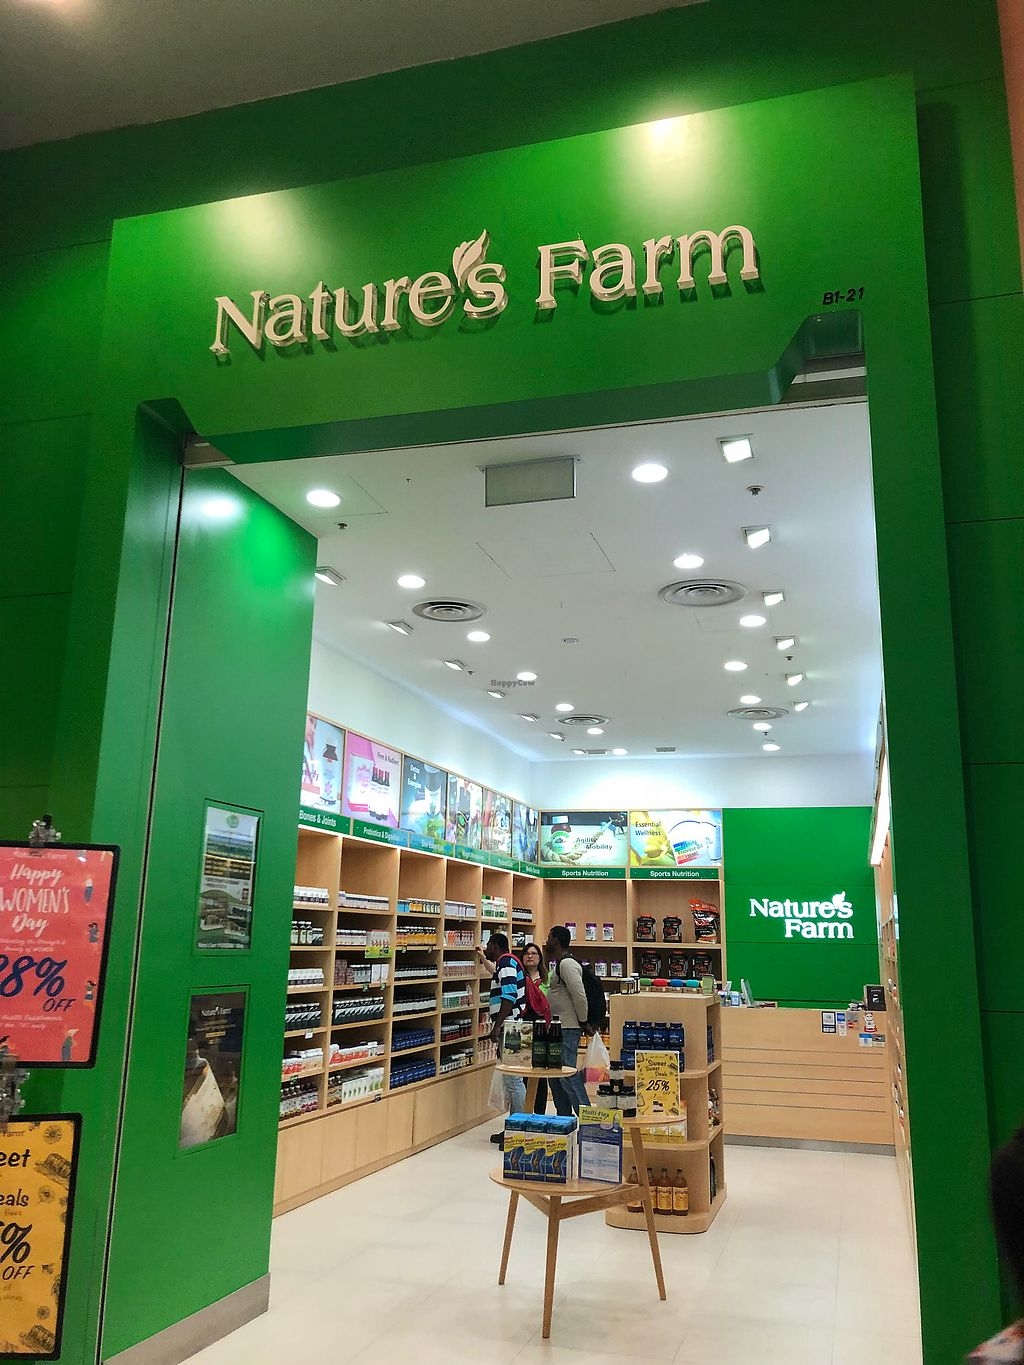 """Photo of Nature's Farm - Jurong Point  by <a href=""""/members/profile/AmyLeySzeThoo"""">AmyLeySzeThoo</a> <br/>Shop front  <br/> March 21, 2018  - <a href='/contact/abuse/image/114115/373562'>Report</a>"""